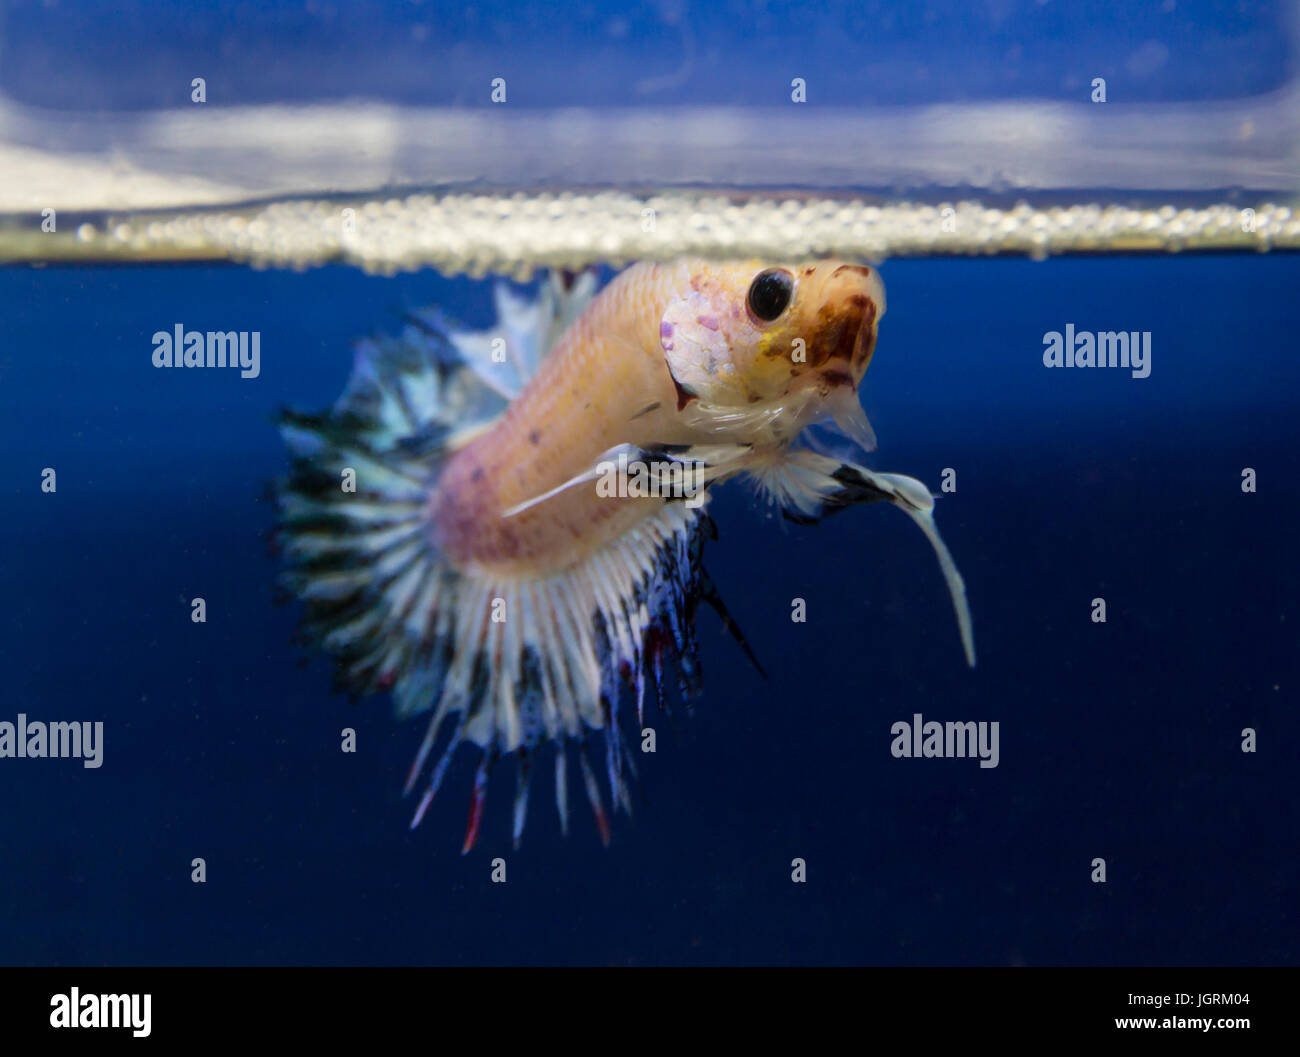 Crowntail siamese fighting fish in a blue background Stock Photo